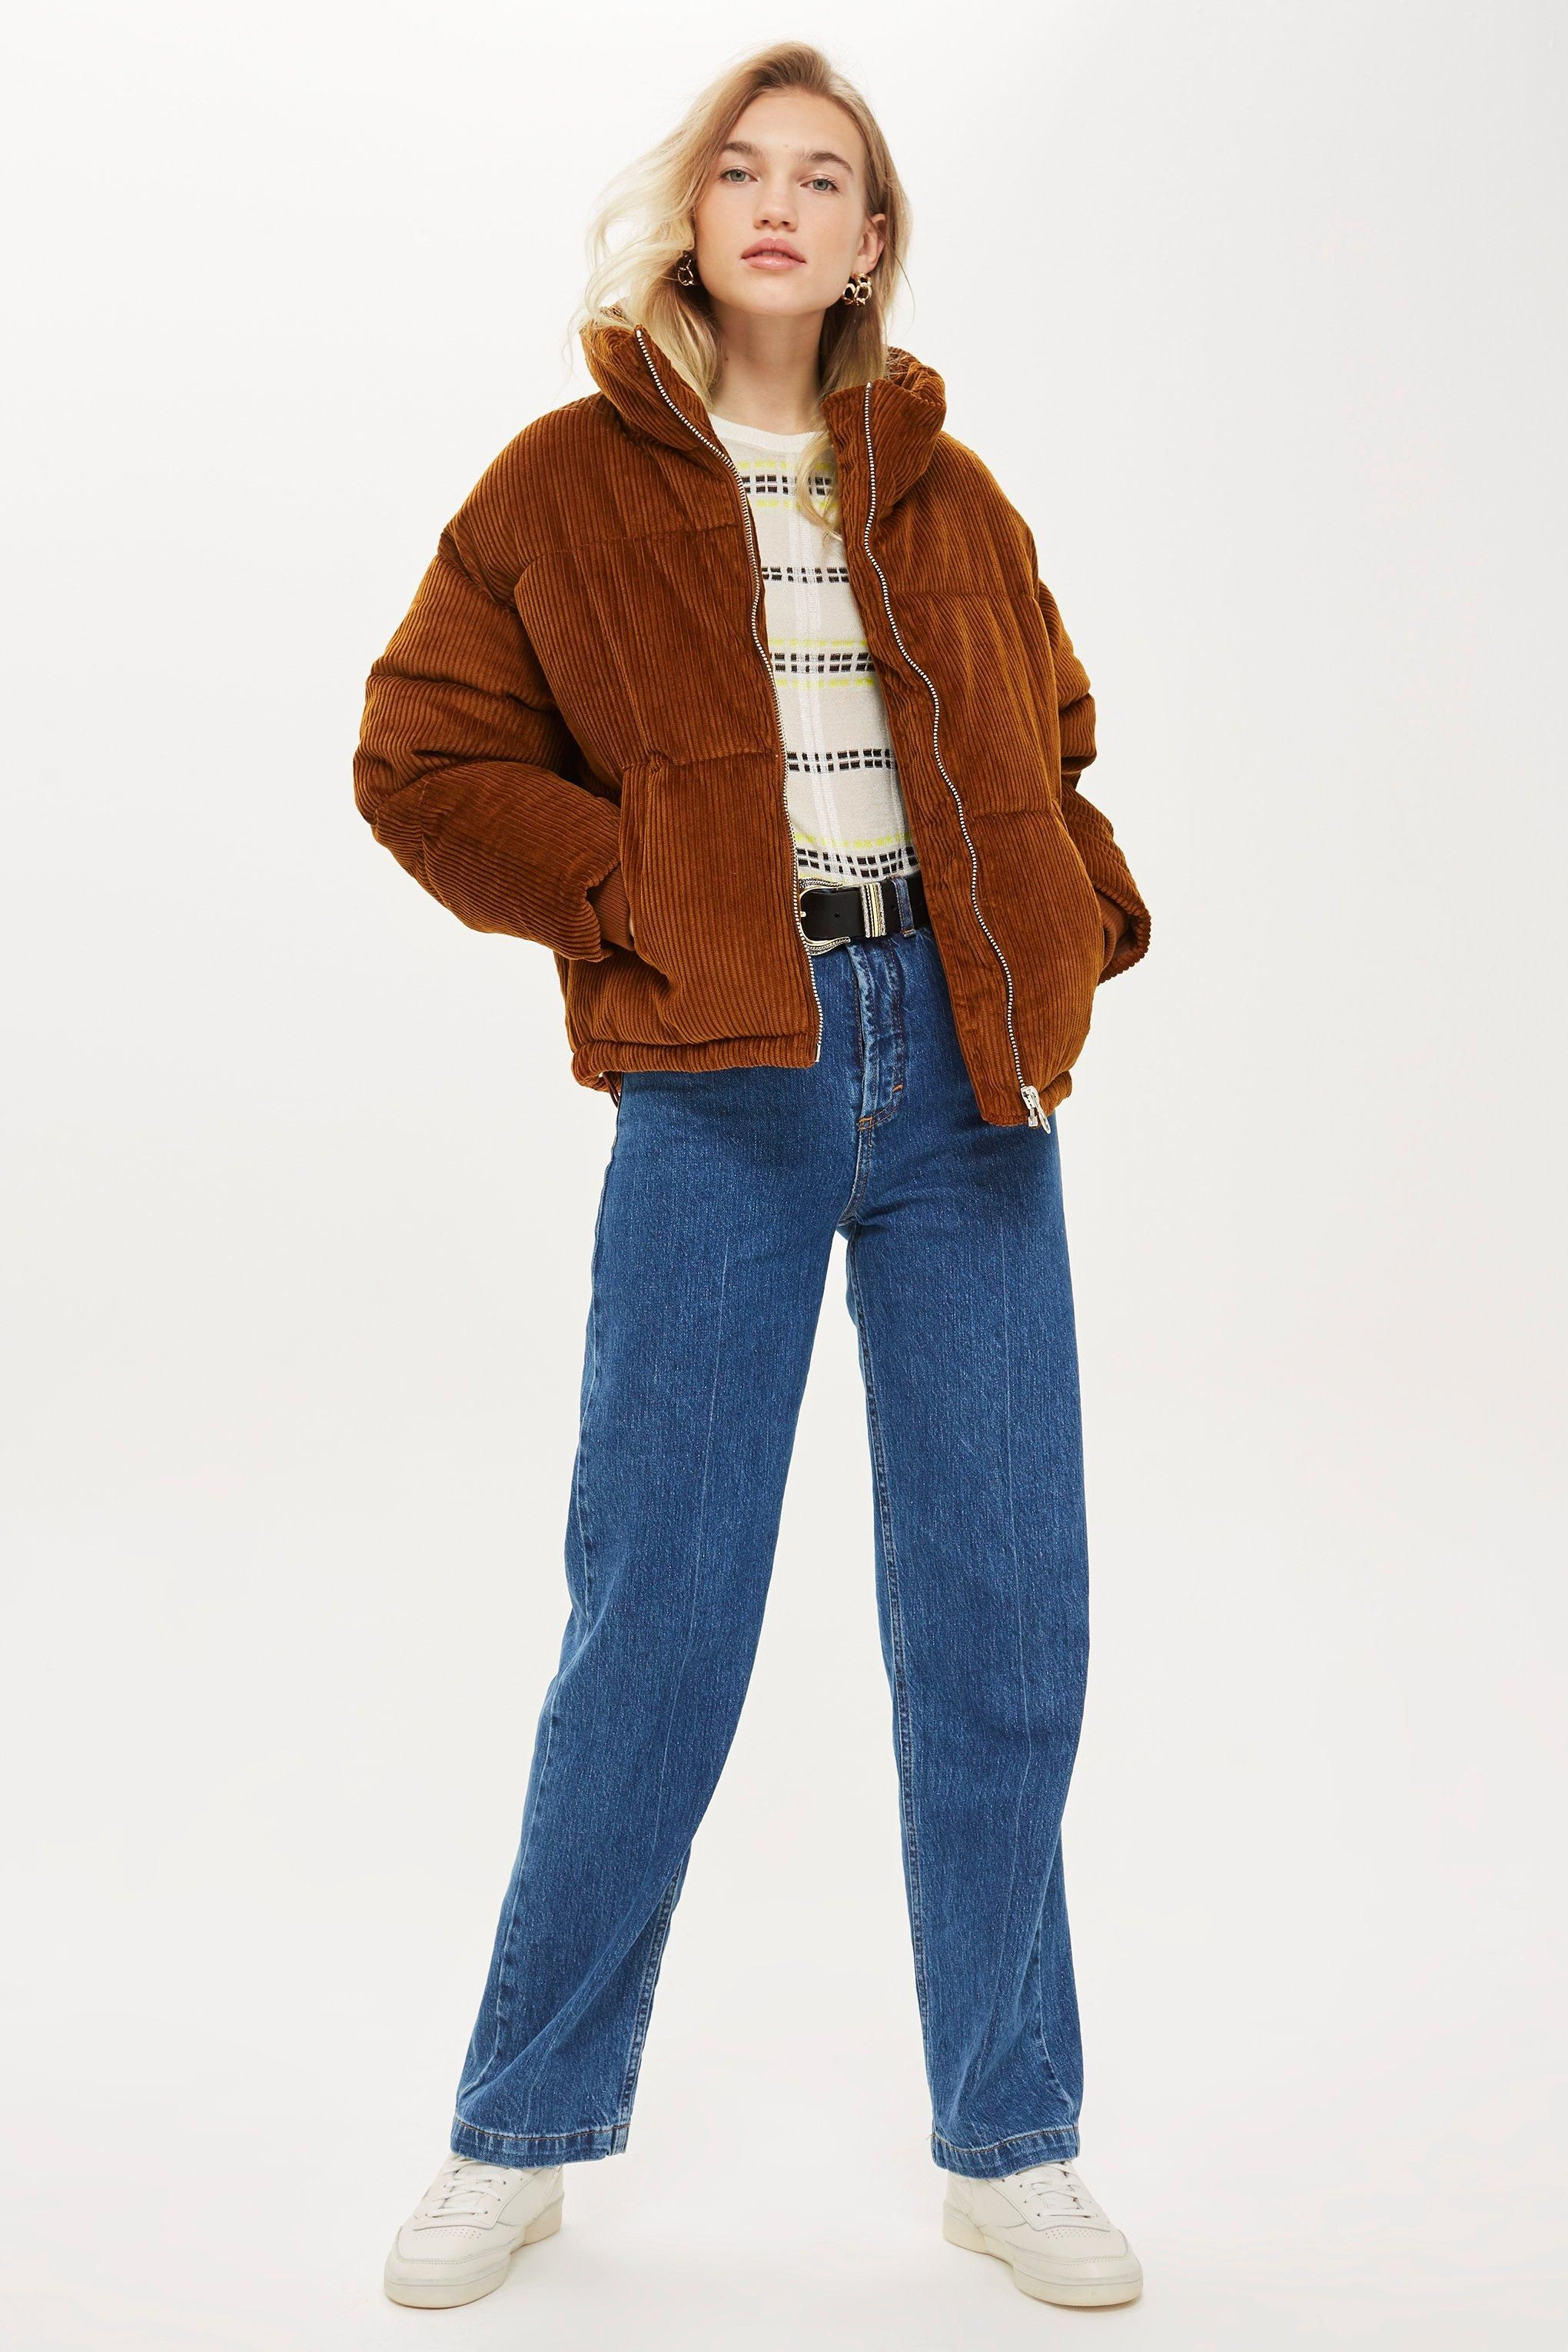 Chunky Corduroy Puffer Jacket (With images) | Puffer ...